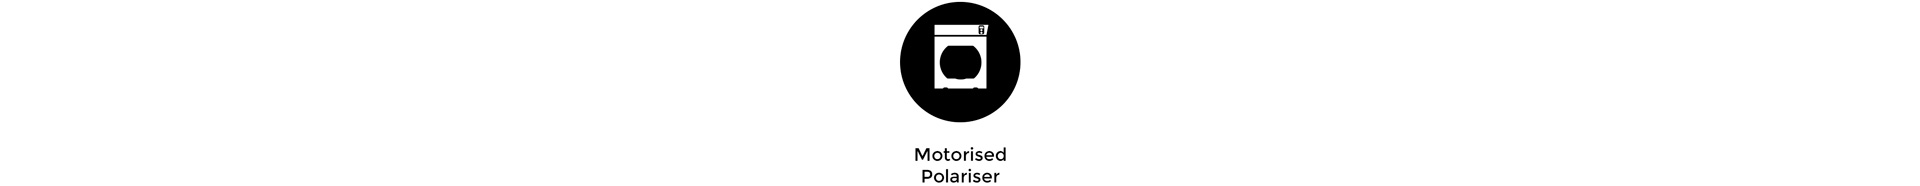 Icon of Motorised Polariser for RotaPola mode with the Cinefade VariND